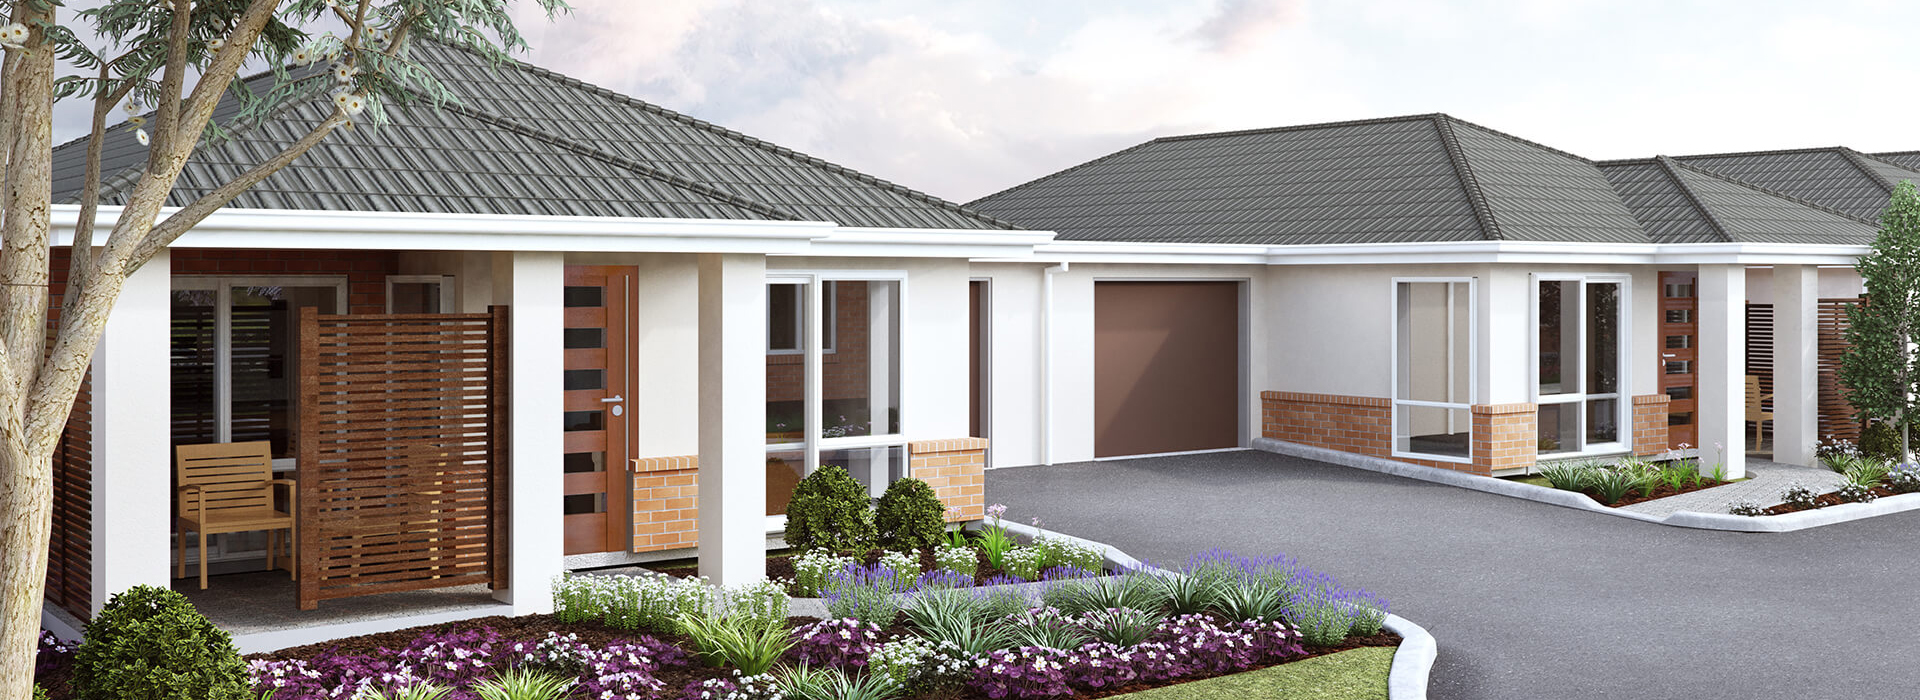 Highton Retirement Village Ryman Healthcare